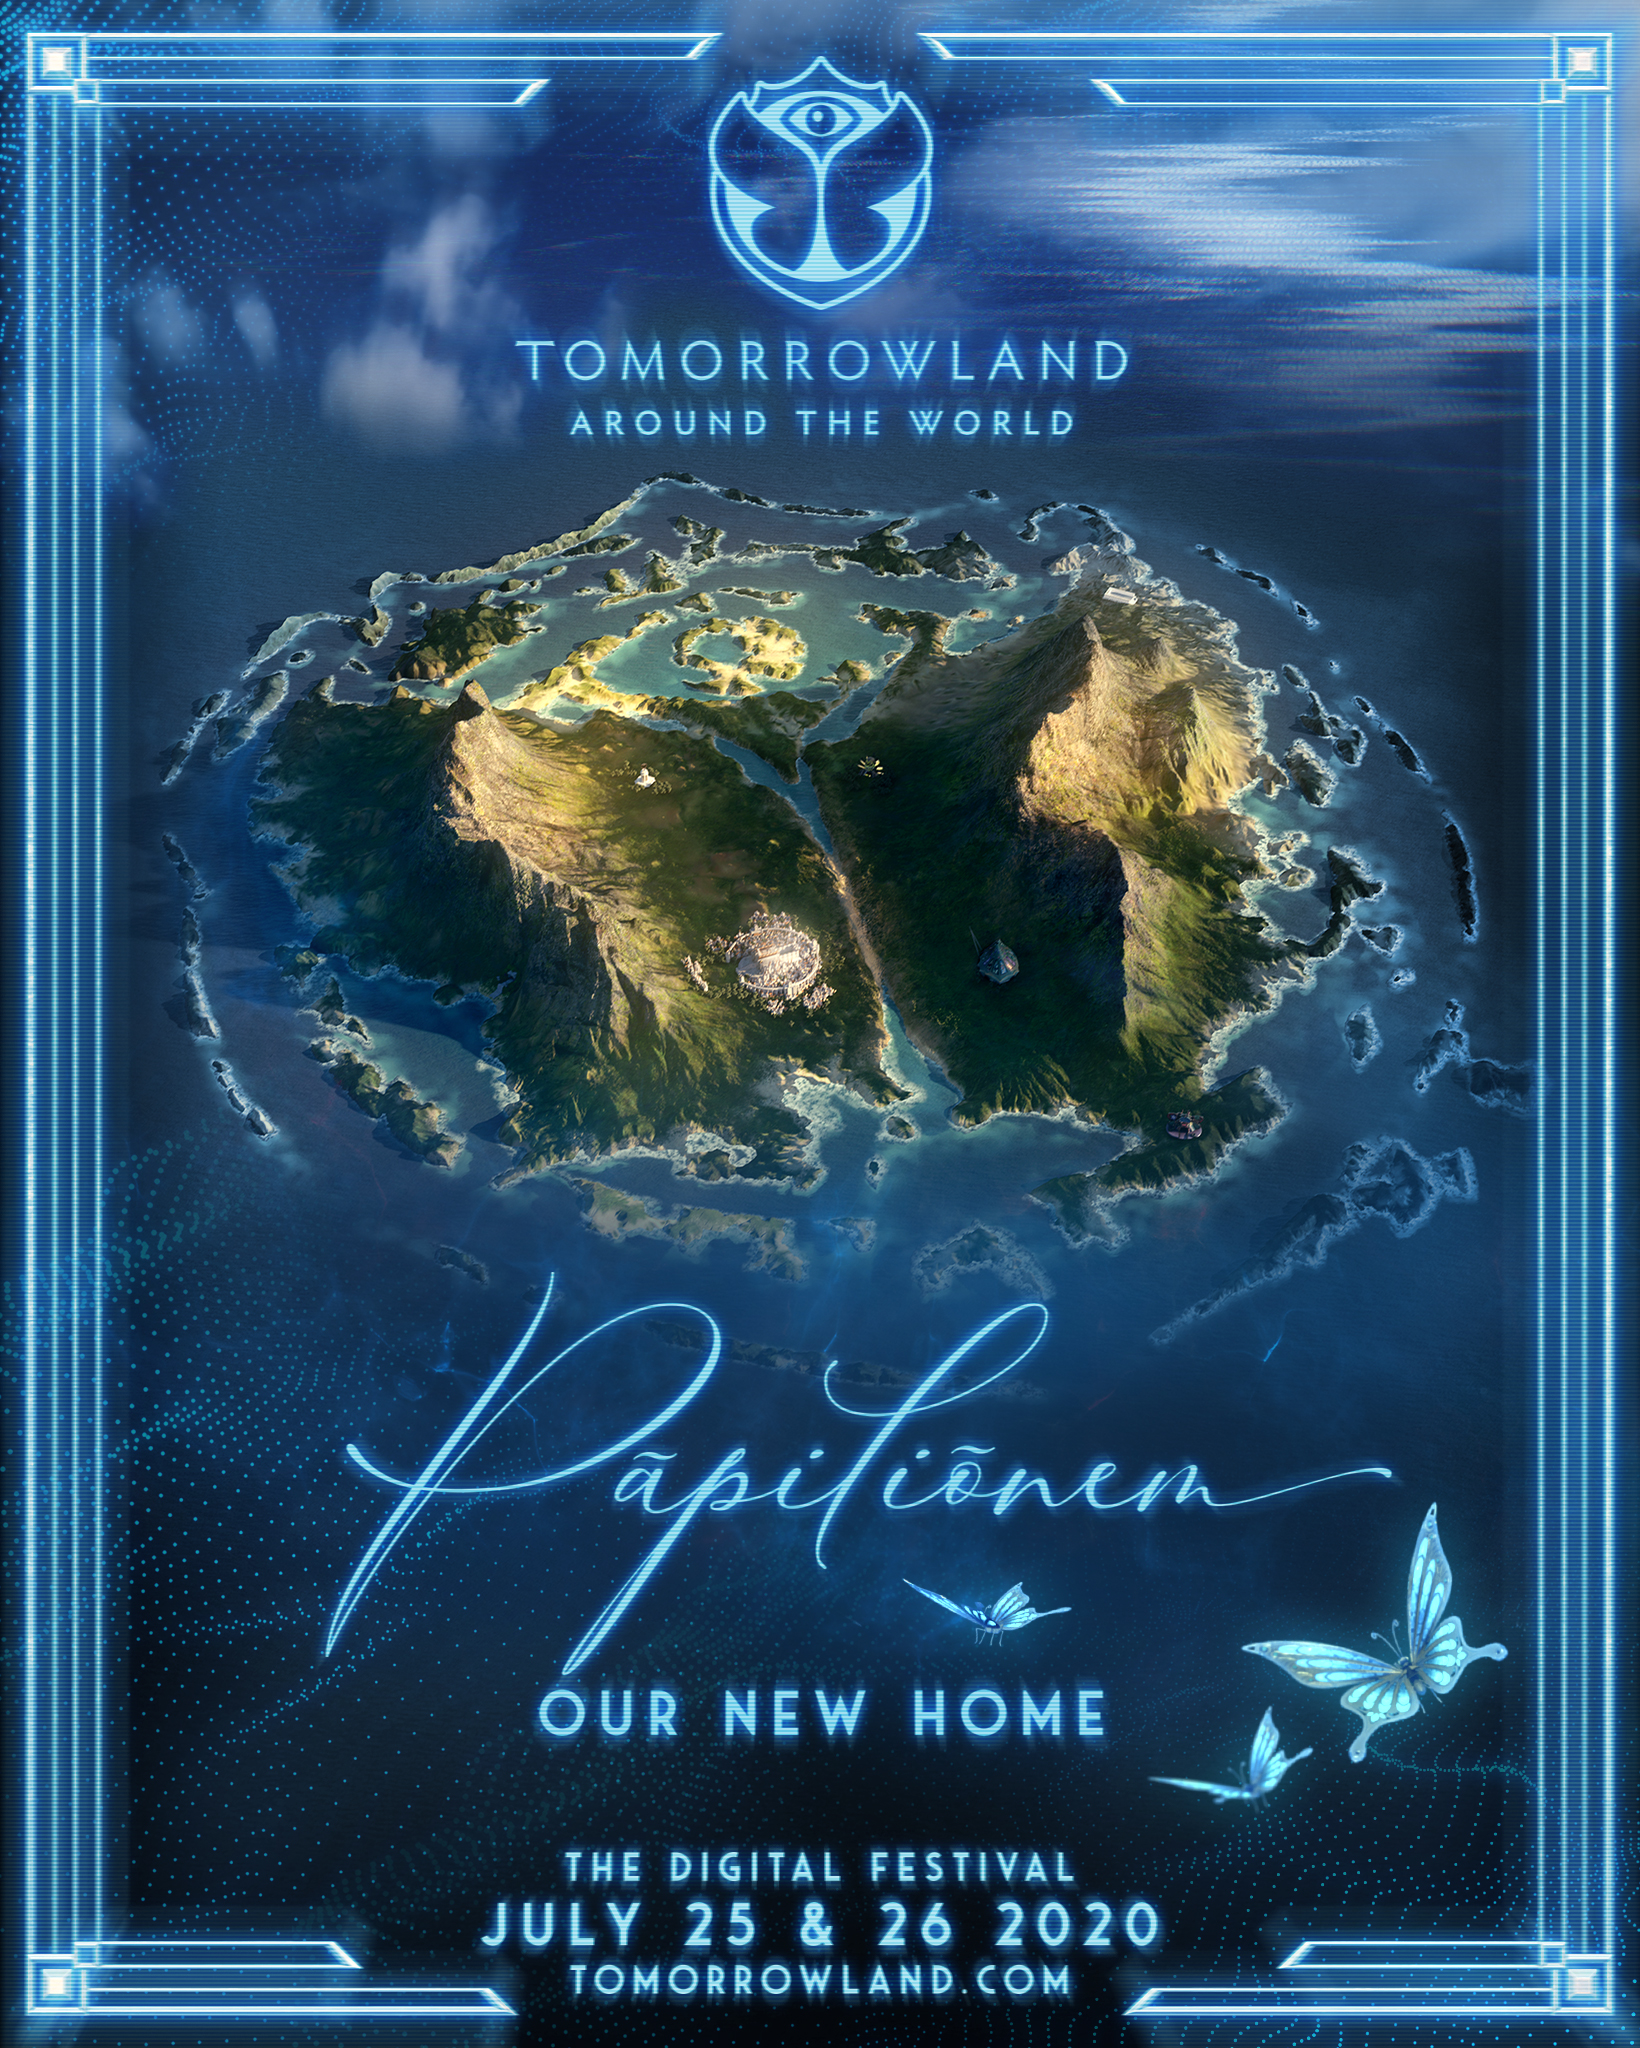 Tomorrowland Unveils Its New Home Pāpiliōnem